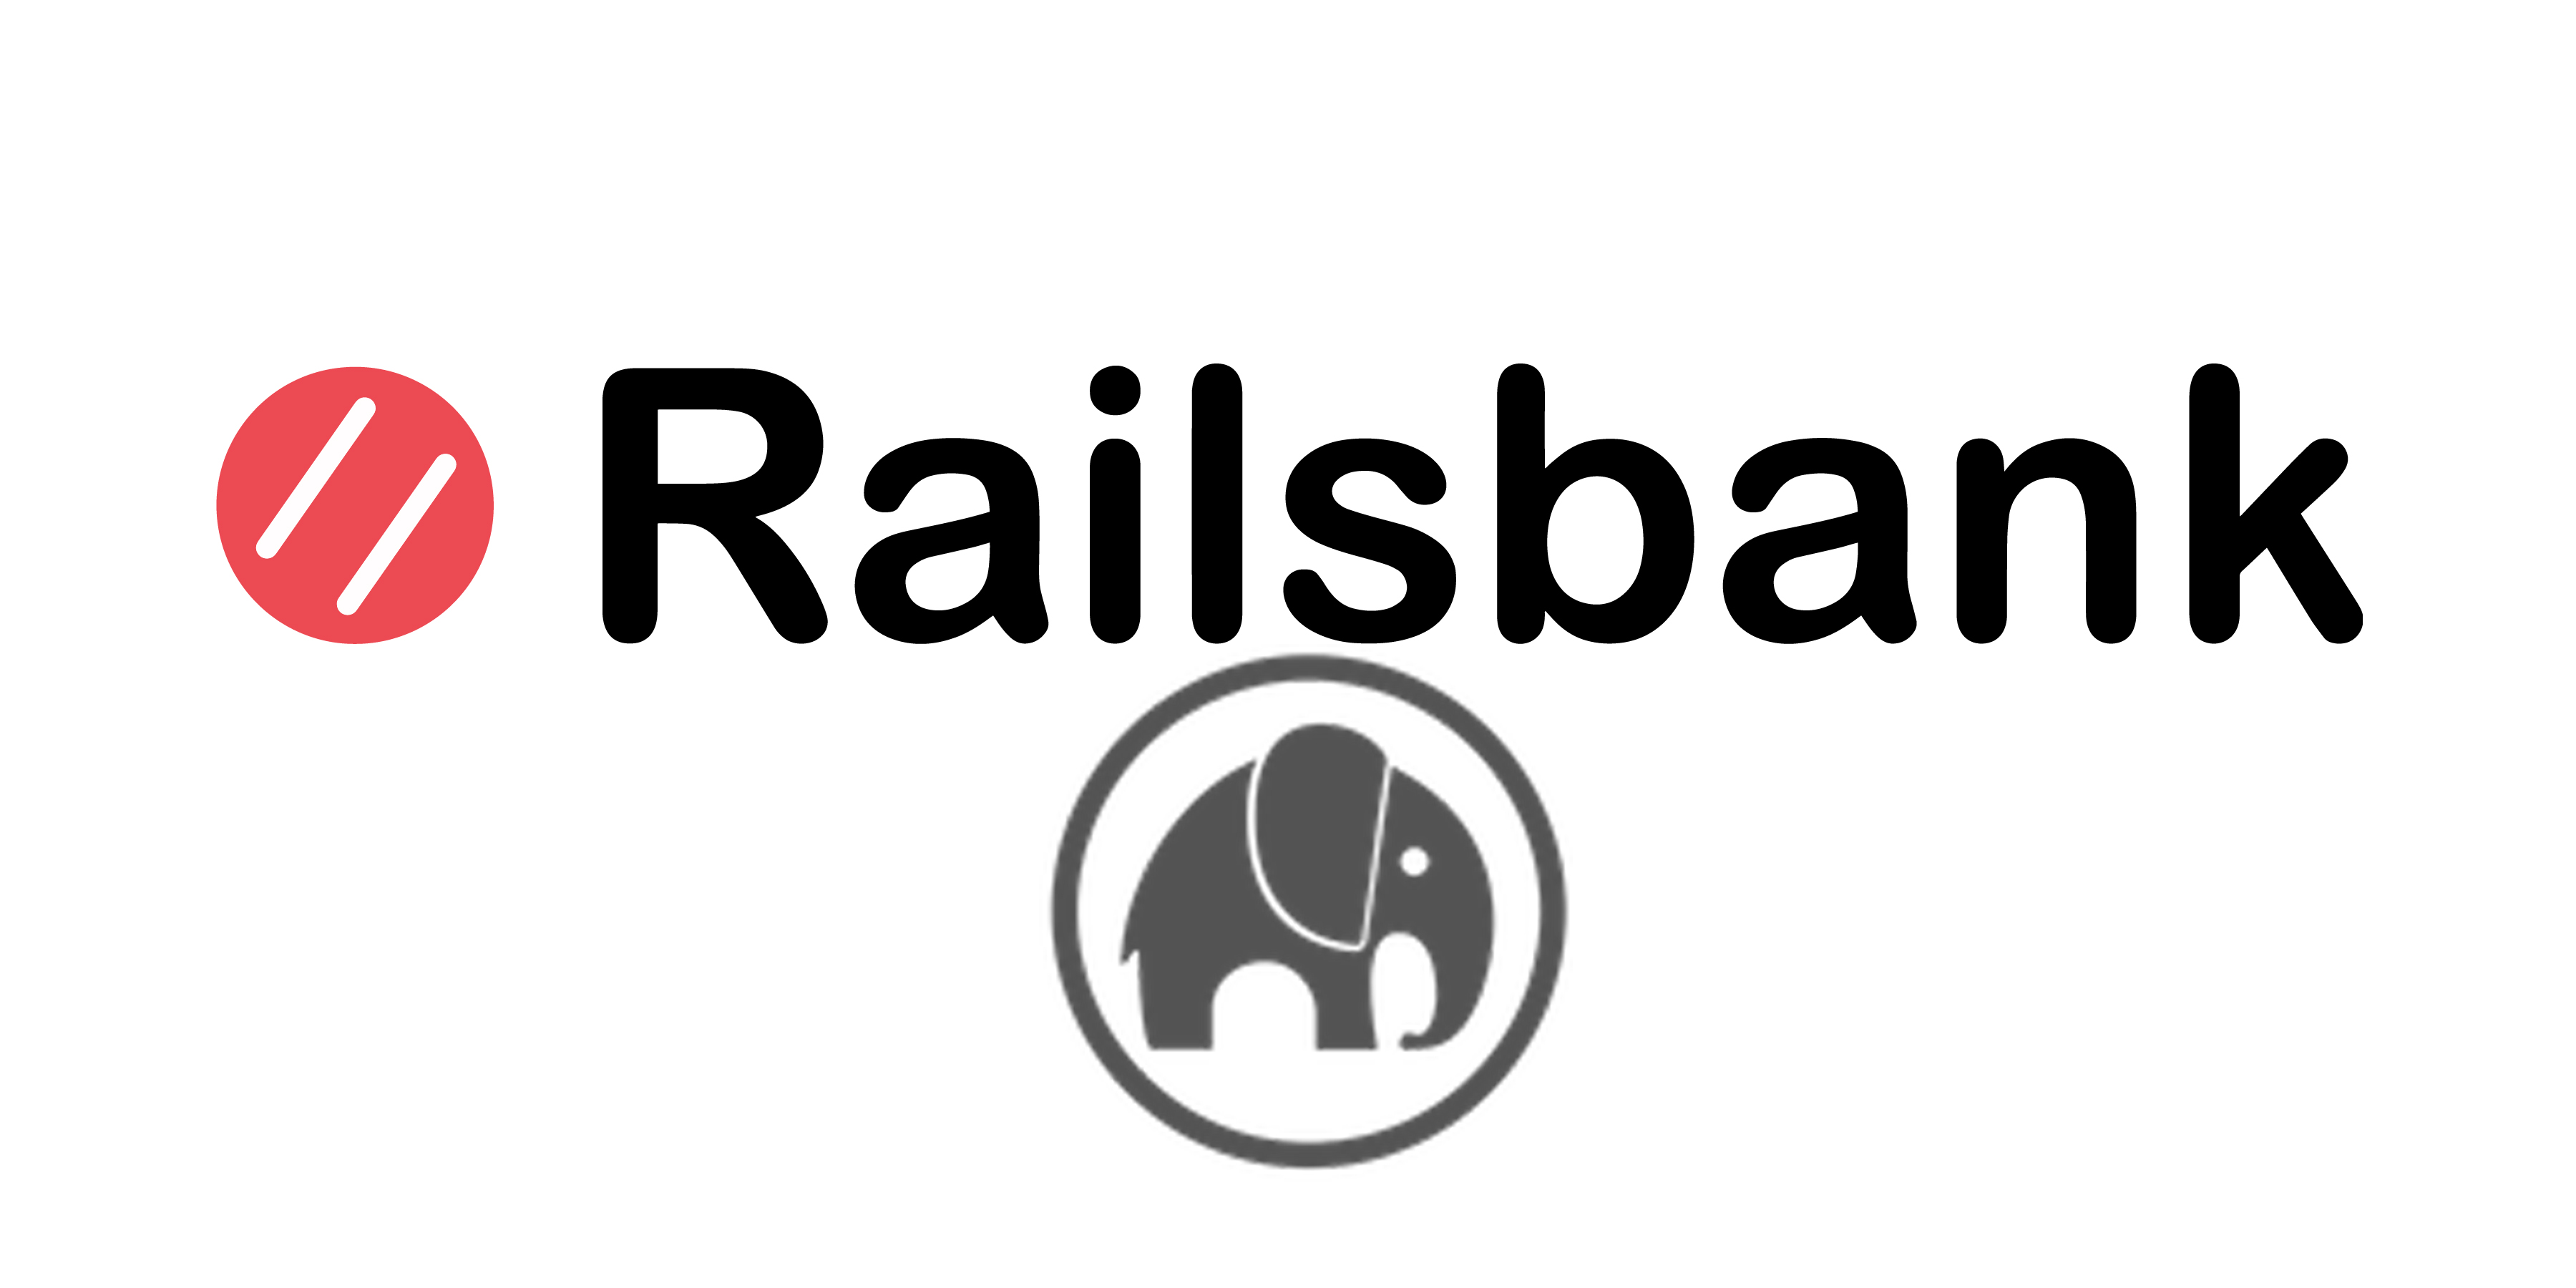 Yimba and Railsbank Partner to Enhance Digital Wallet Services